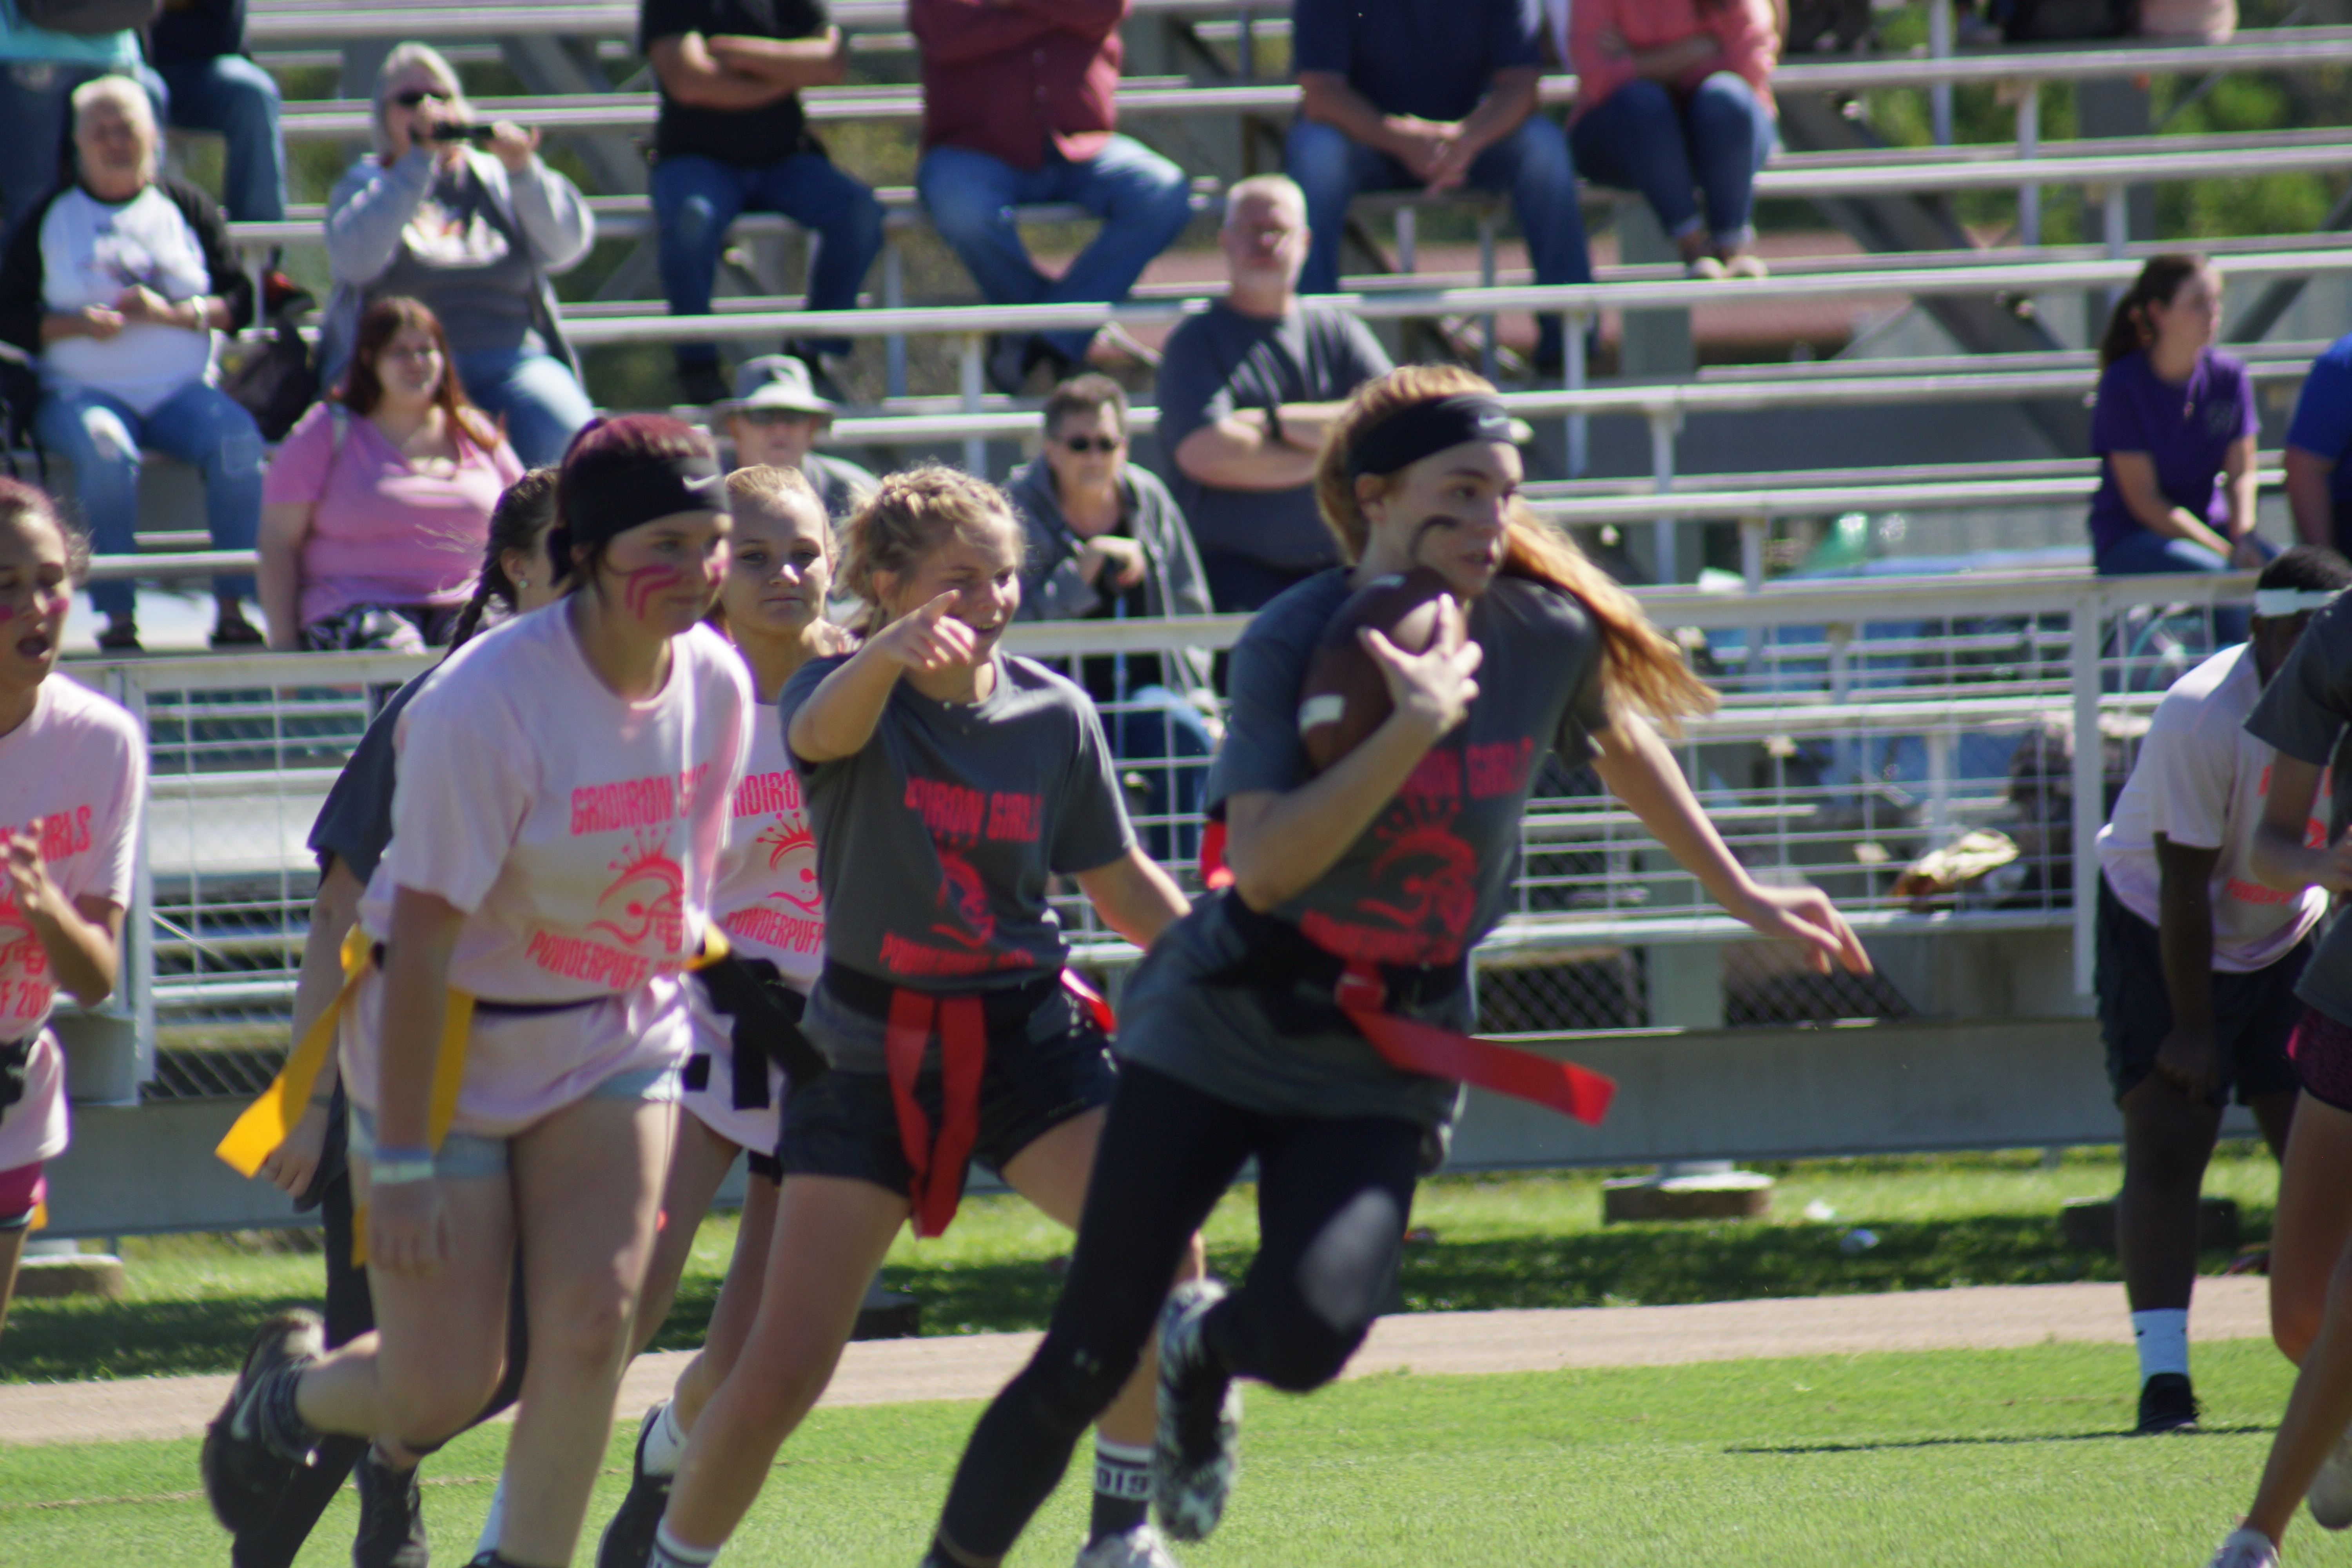 Students Play Power Puff Football